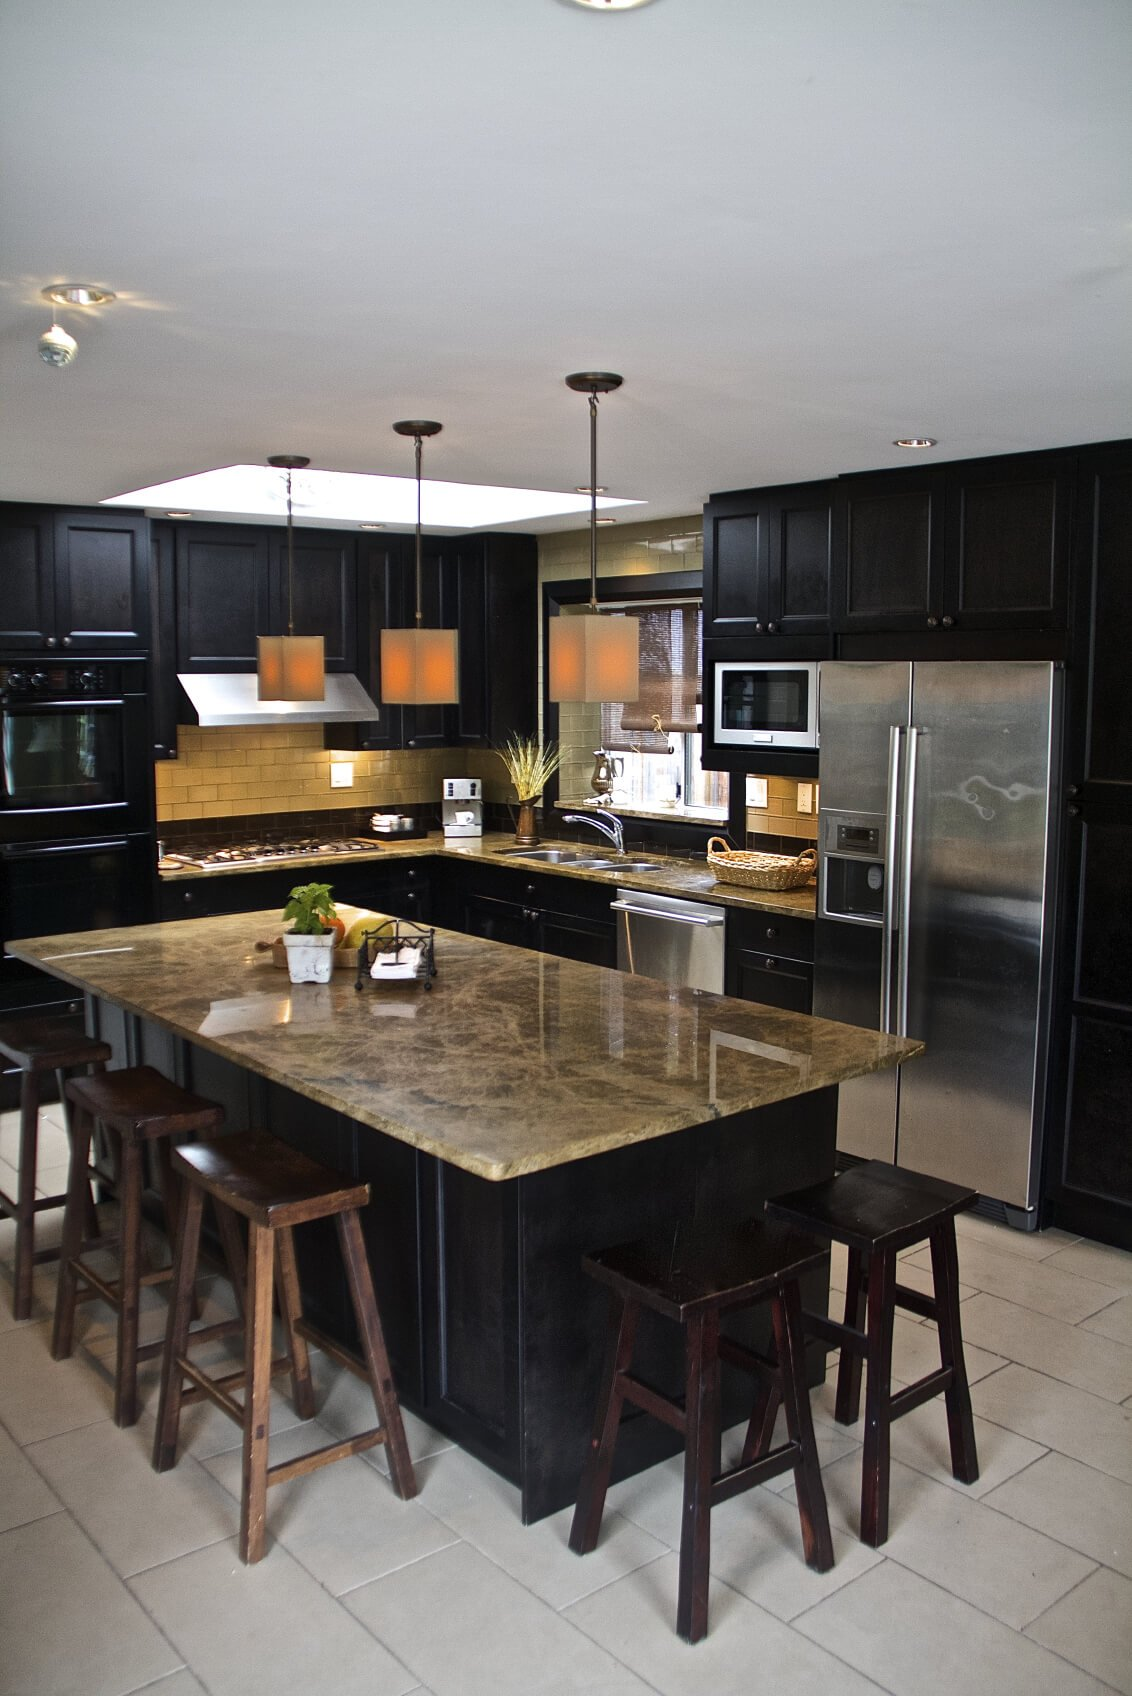 Contemporary black L-shaped kitchen with long island set on white tile floor.